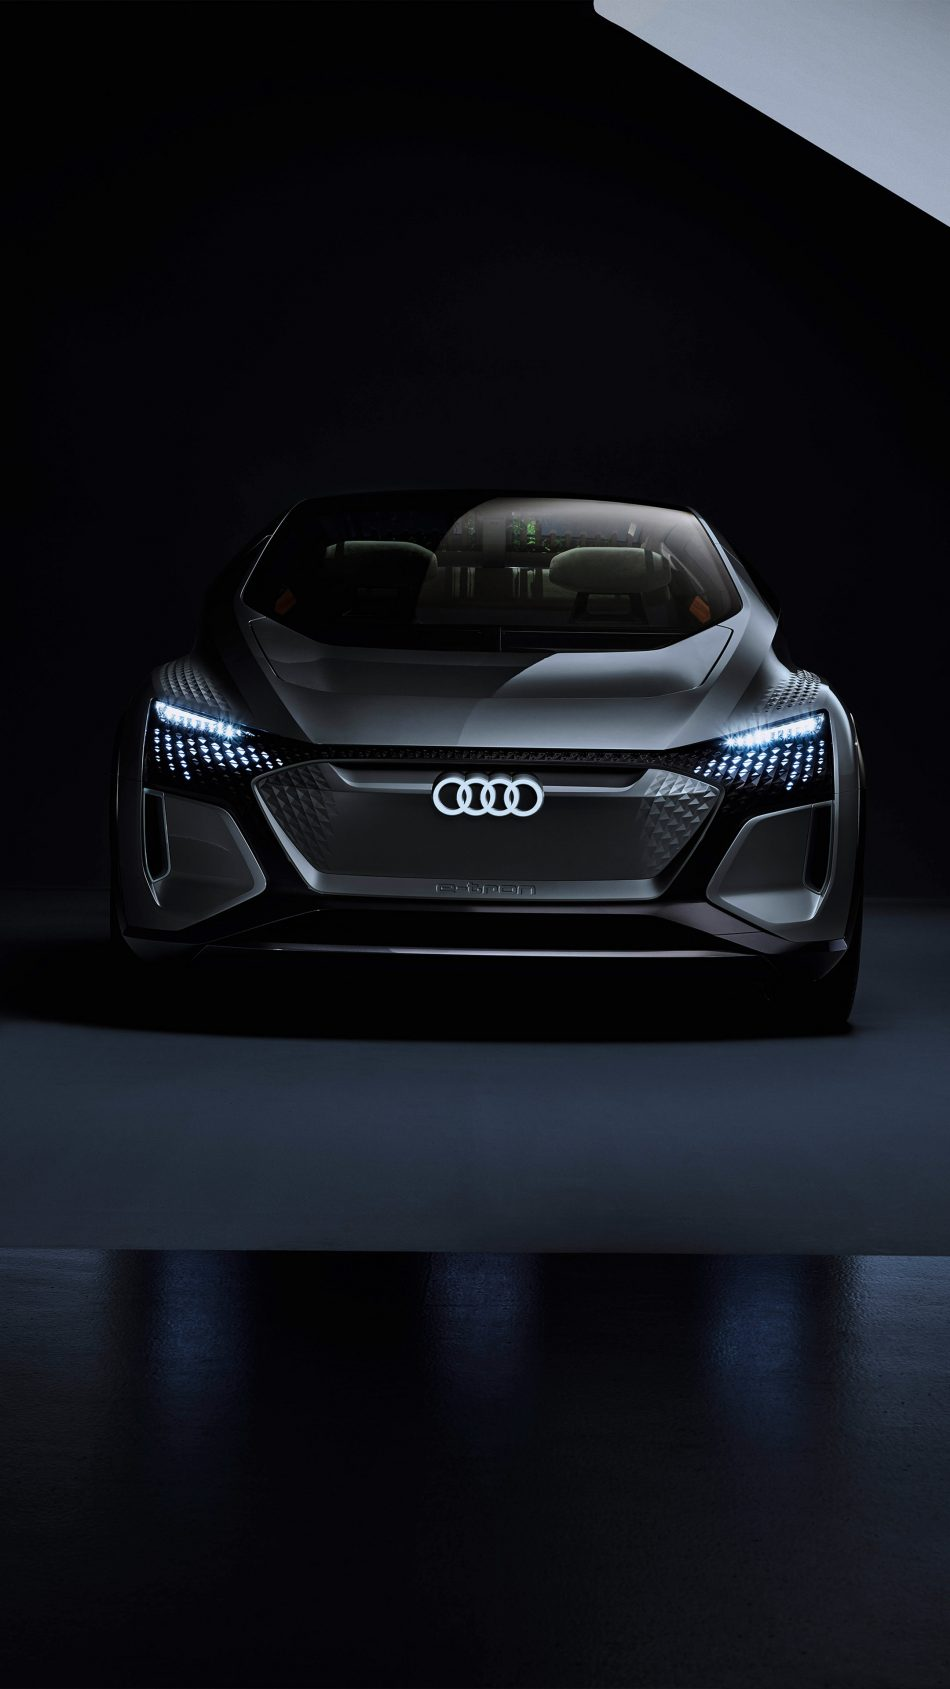 Audi Ai Me Concept Cars 2019 4k Ultra Hd Mobile Wallpaper